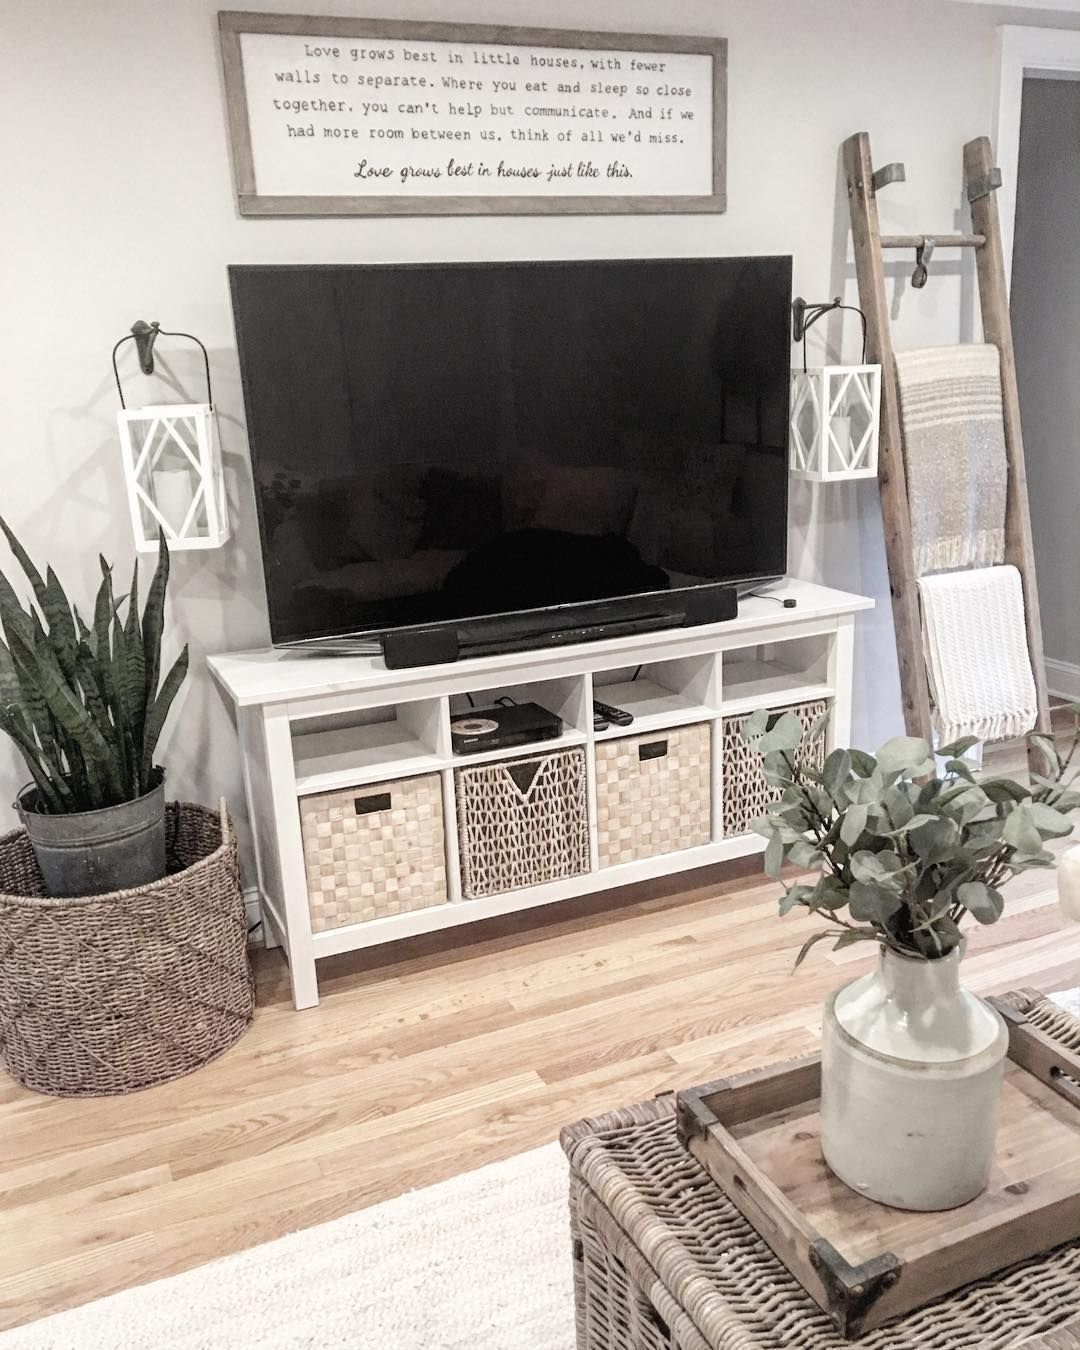 I 💓💓💓💓💓💓 This Tv Area Decor Athomewithjhackie